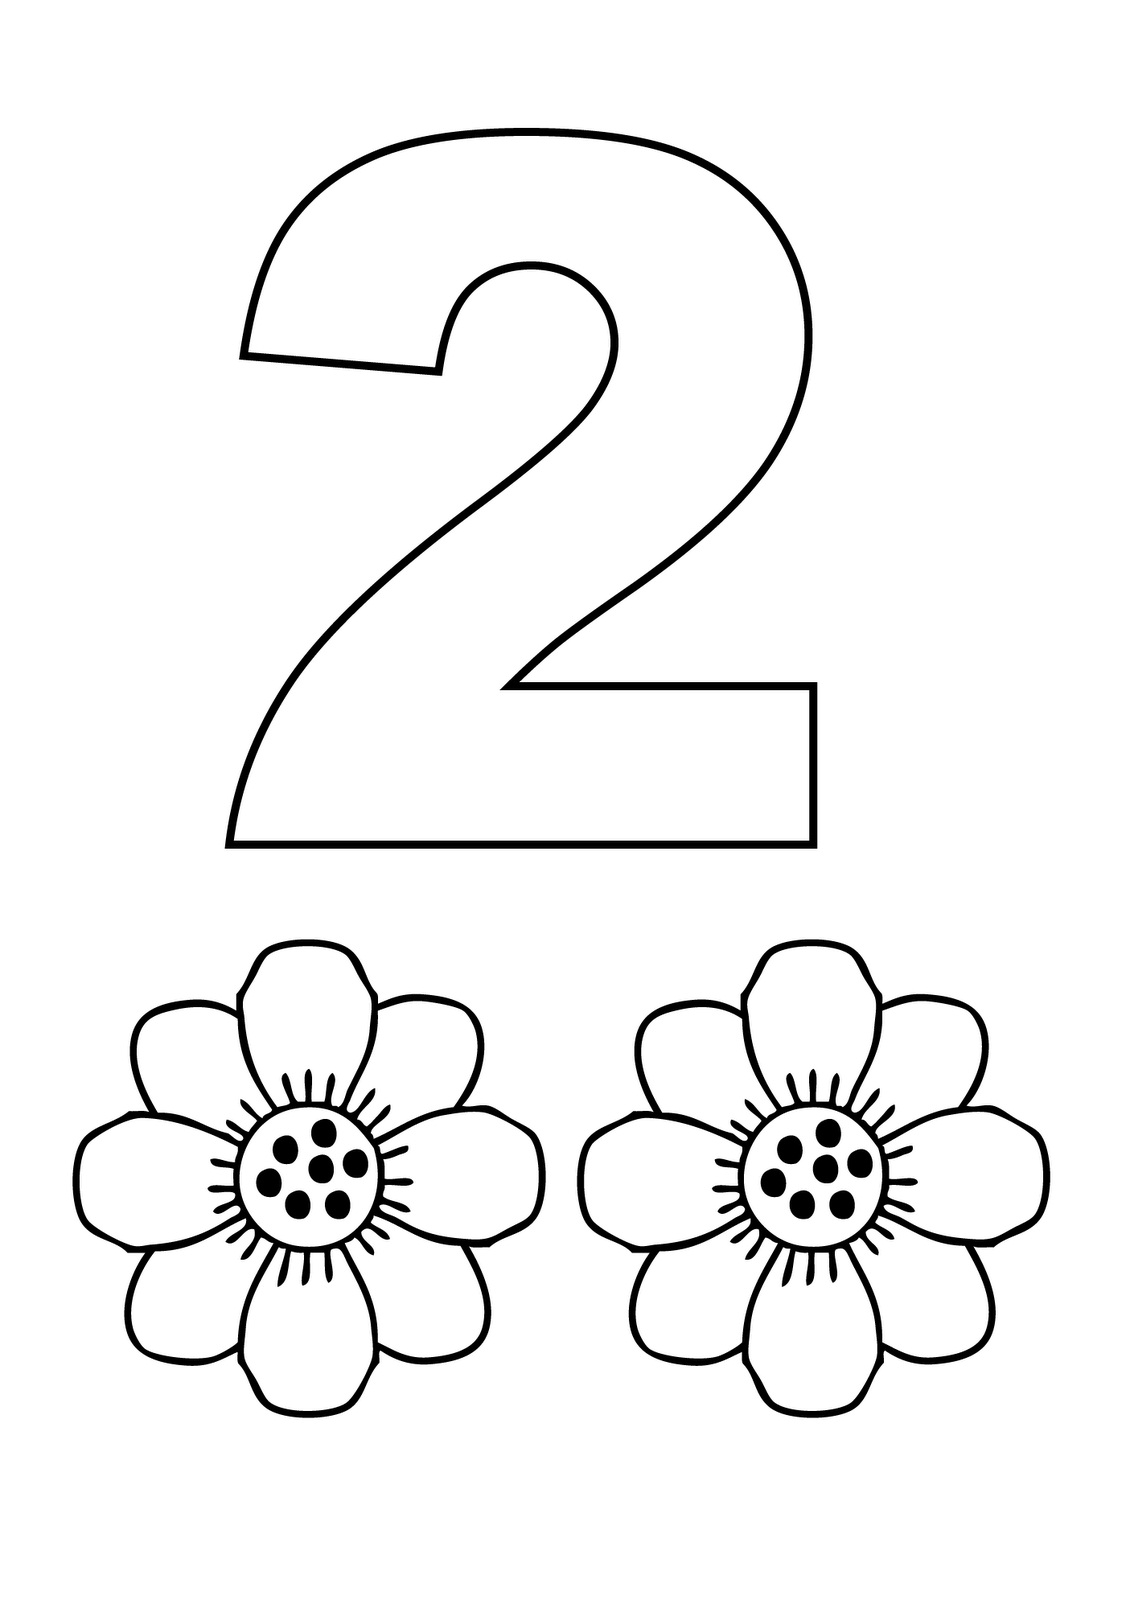 coloring with numbers printable free printable number coloring pages for kids printable with numbers coloring